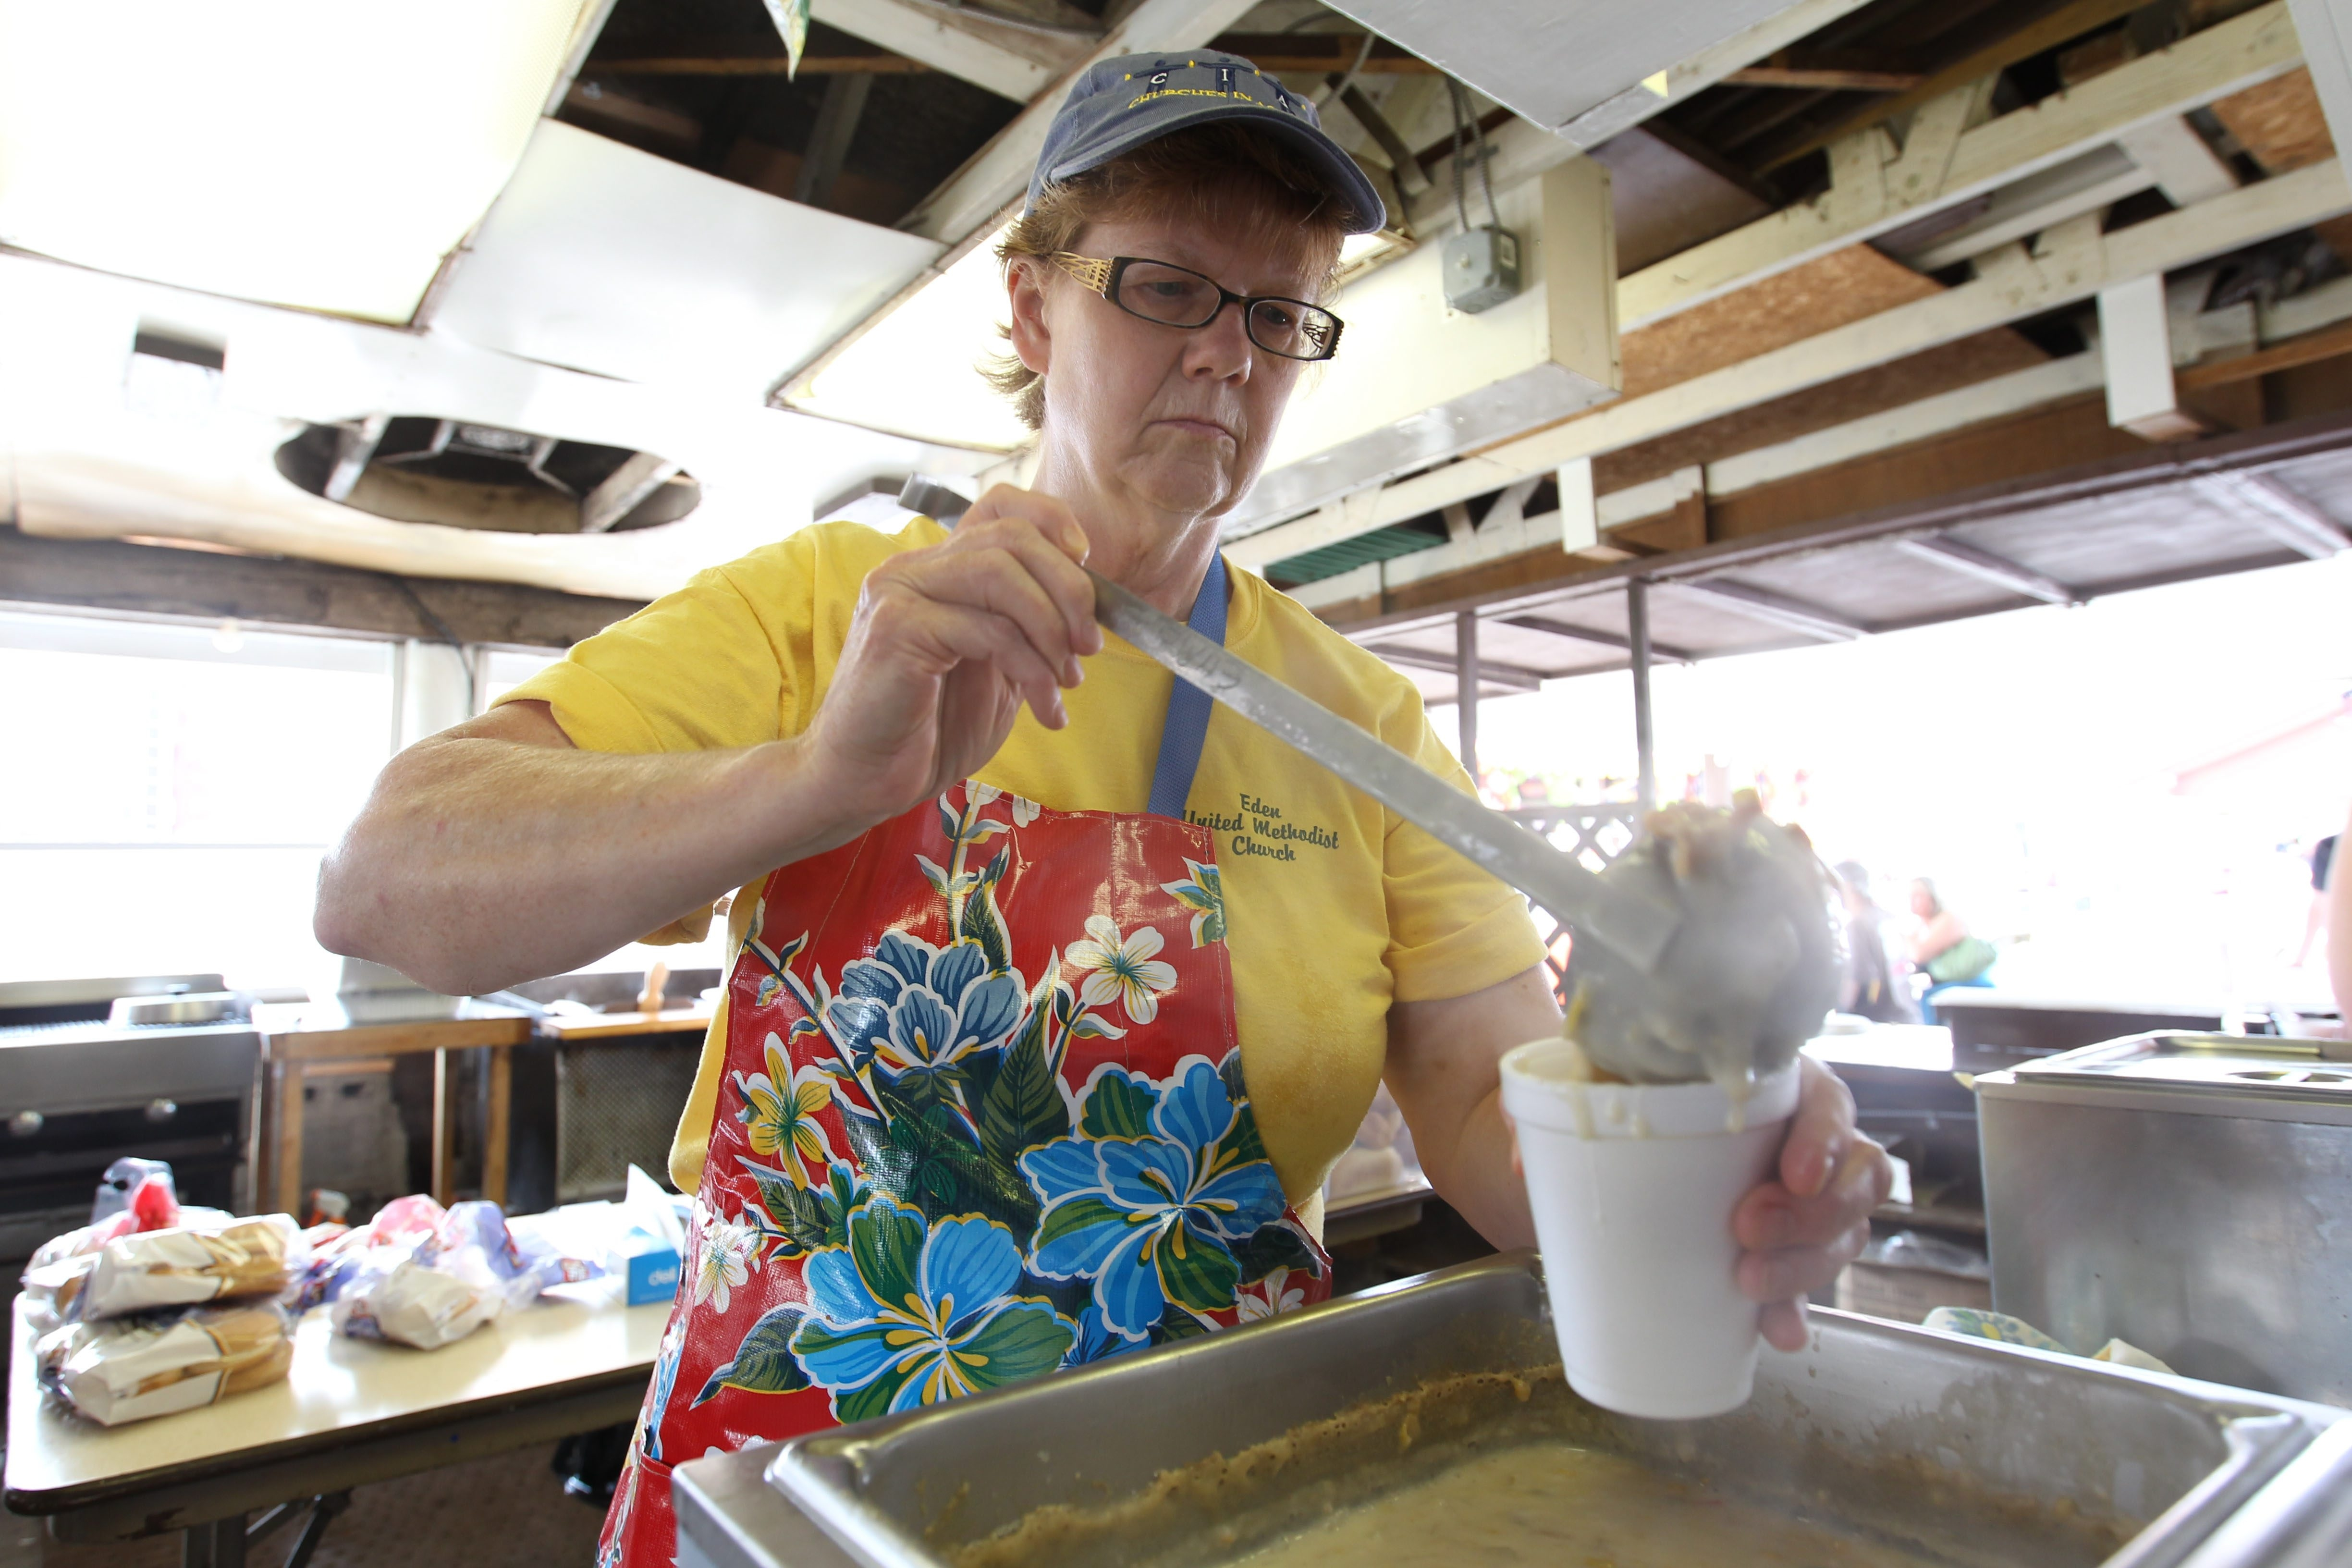 Sue Roseman serves up some traditional corn chowder at the Eden United Methodist Church stand on Friday, the second day of the Eden Corn Festival.